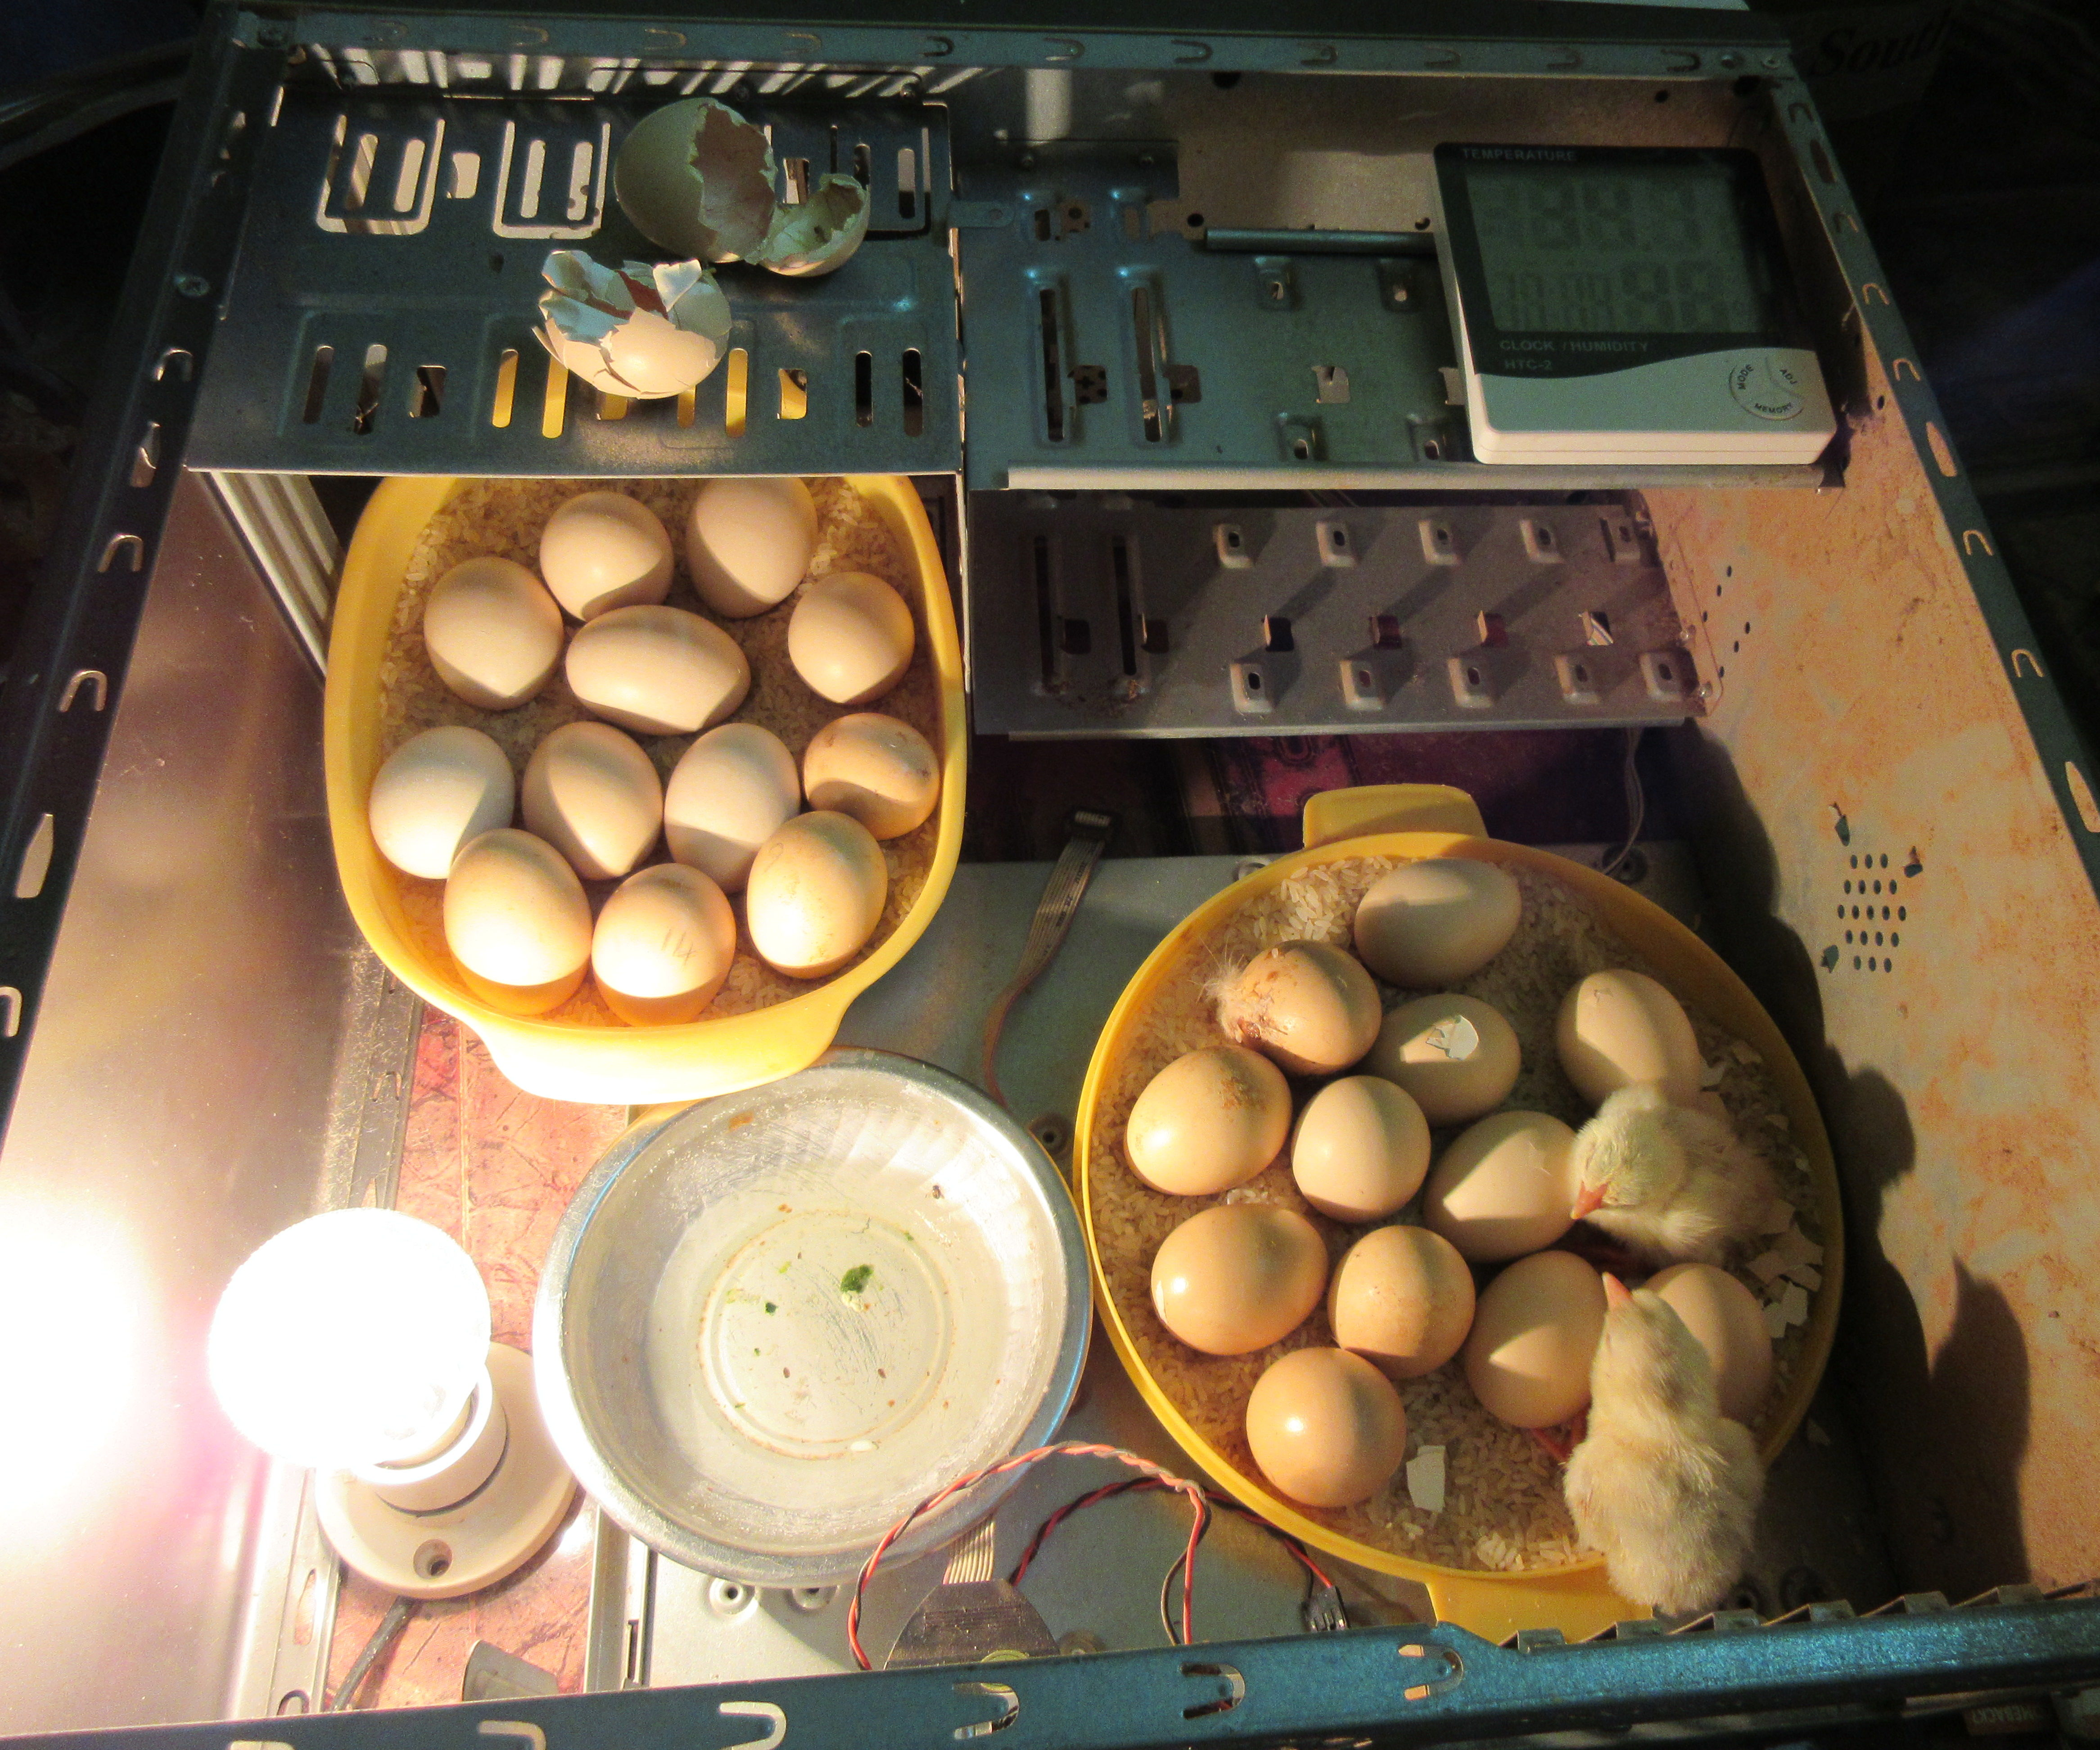 Home-made Incubator From Reclaimed Desktop Computer Case